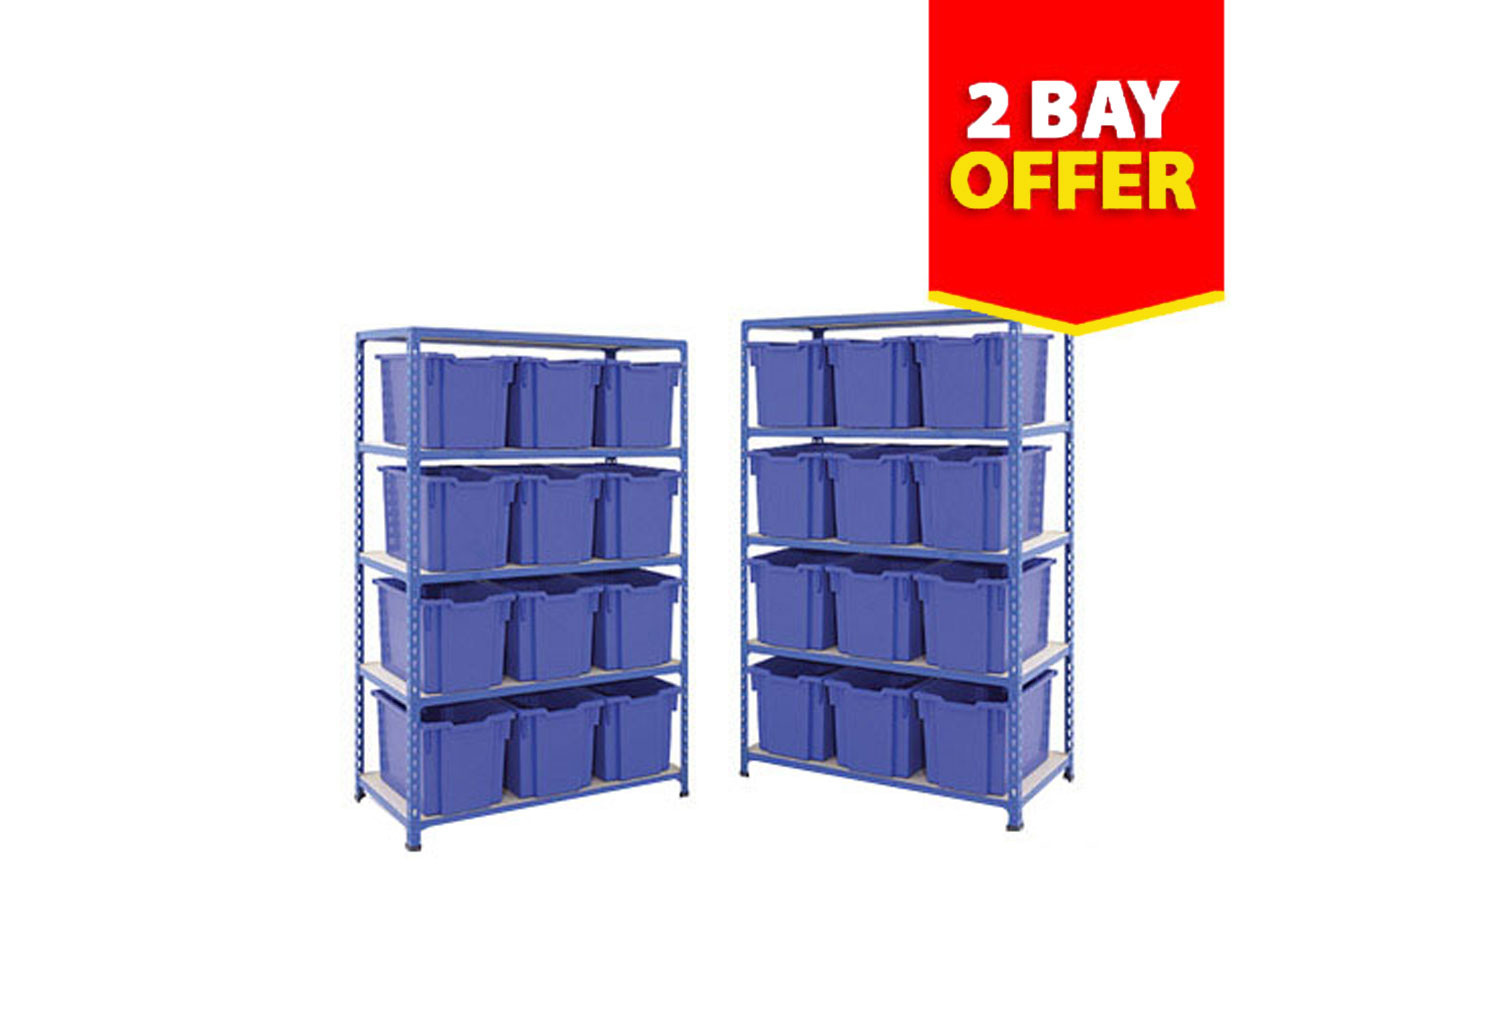 Rapid 2 shelving bay bundle deal with 24 jumbo Gratnells trays